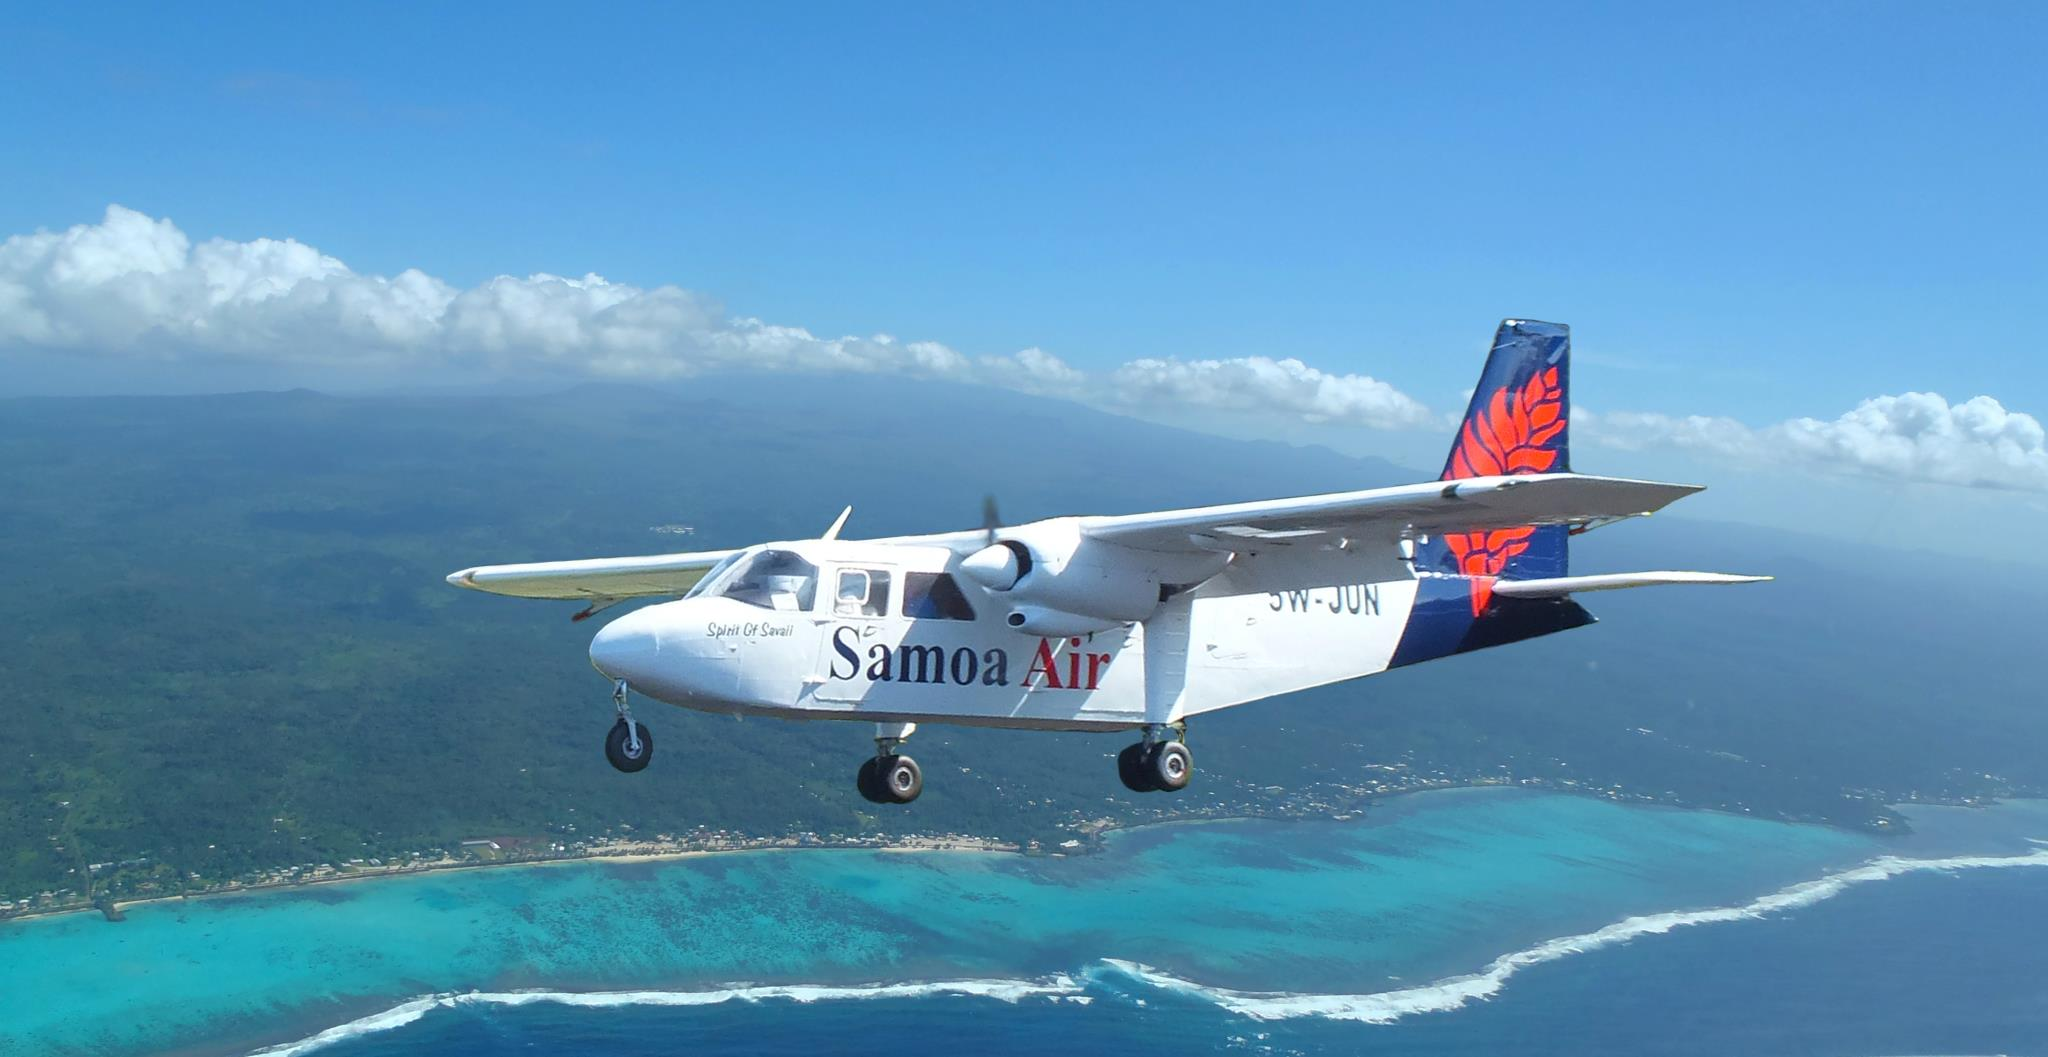 Up in the air in Samoa.